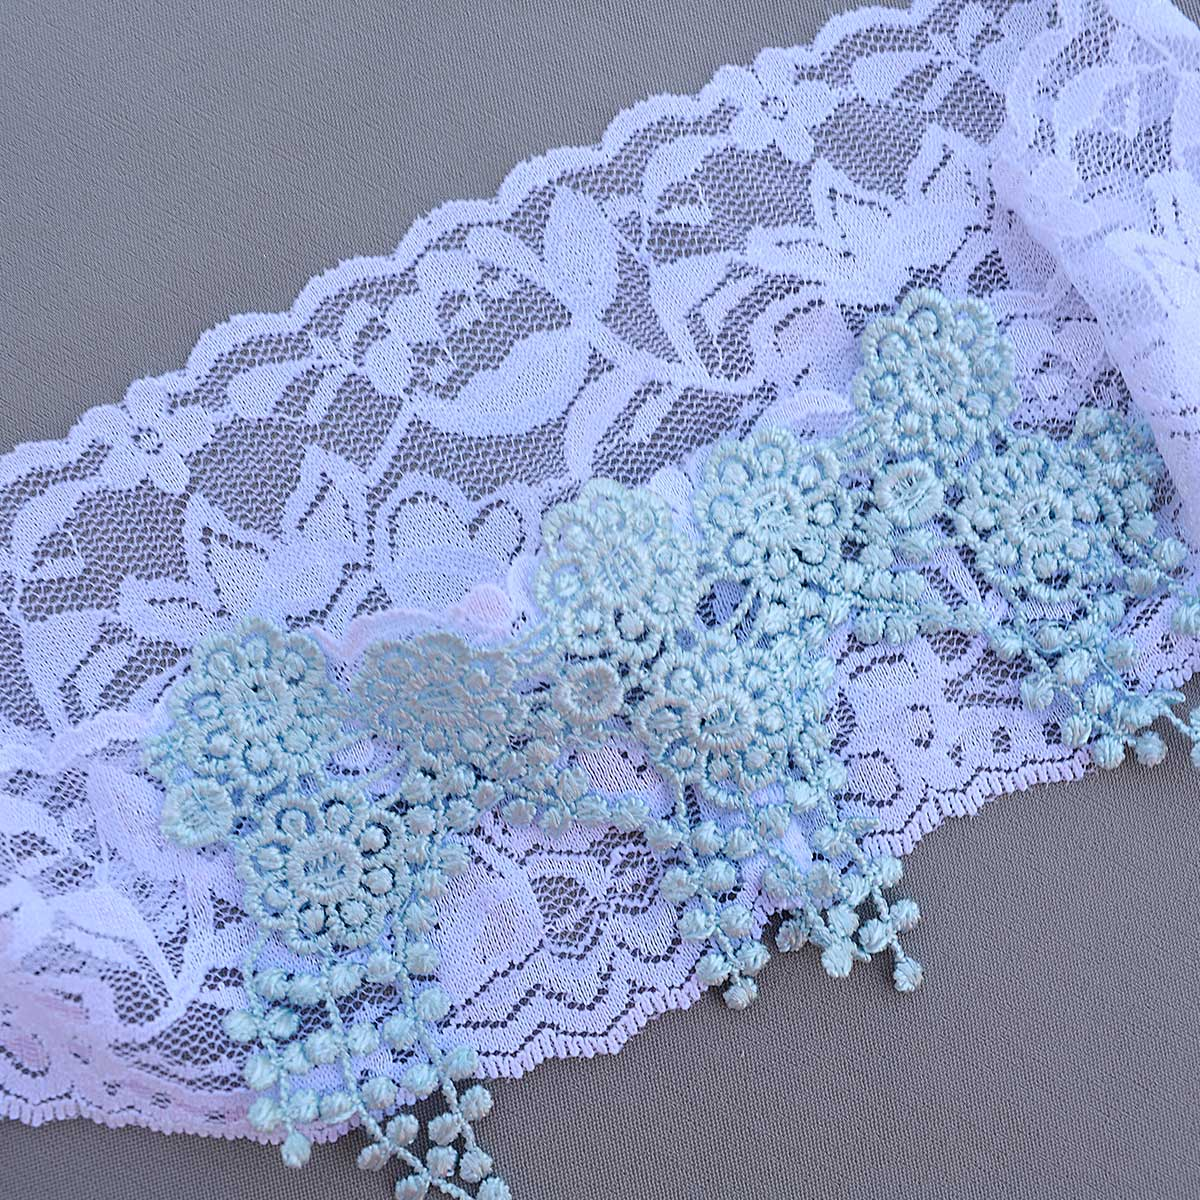 White Bridal Garter With Pearls & Aqua Blue Lace Applique - Wedding Garter - SuzannaM Designs